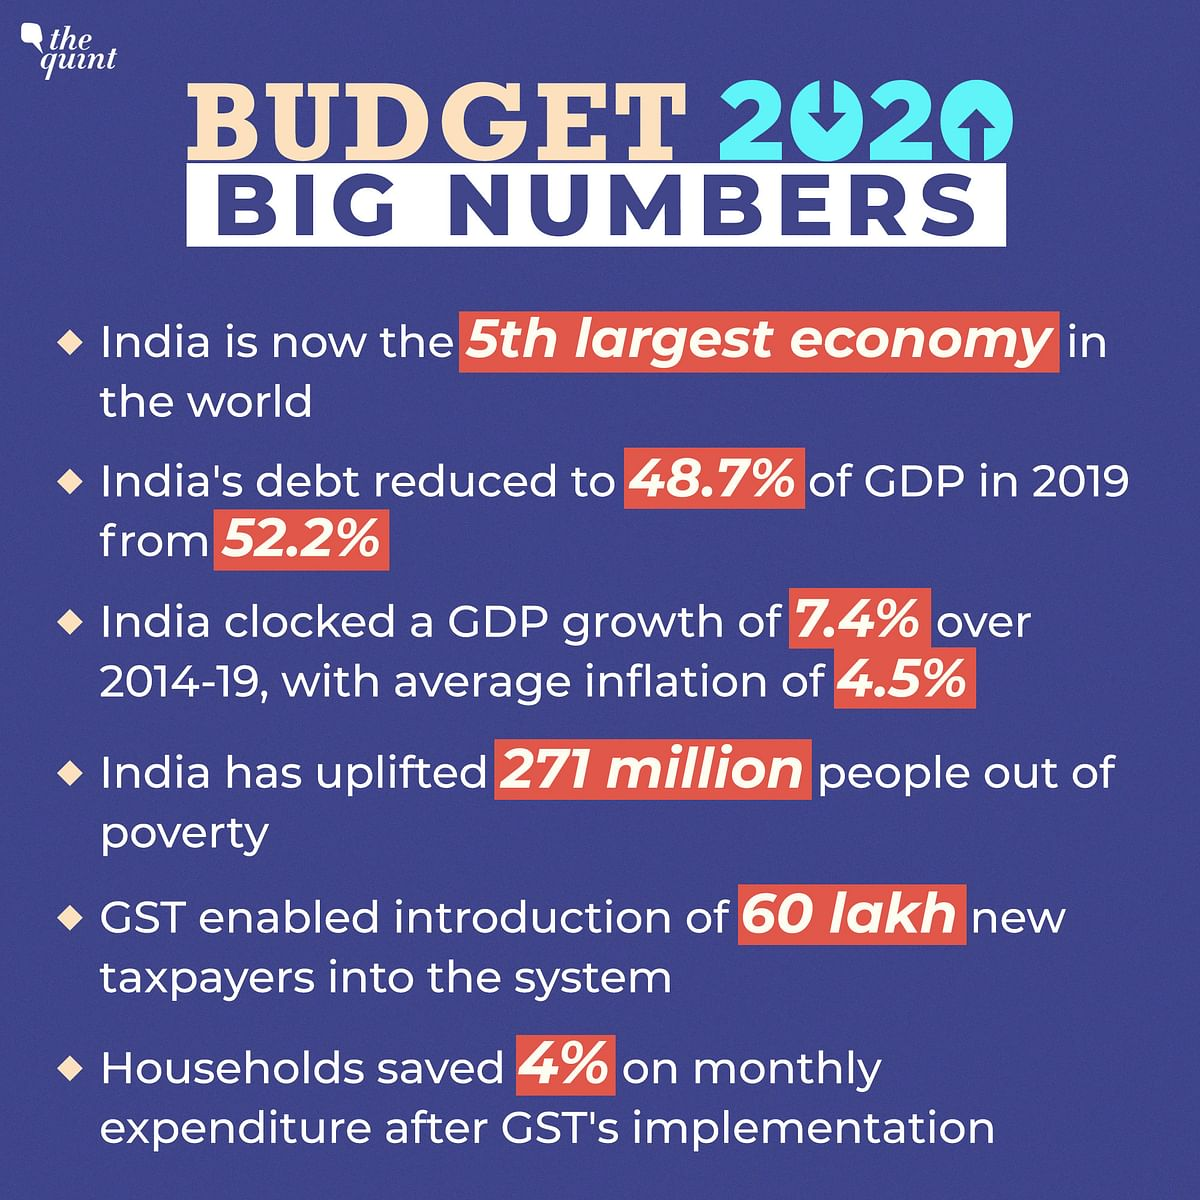 India Now 5th Largest Economy Globally: Budget Numbers at a Glance